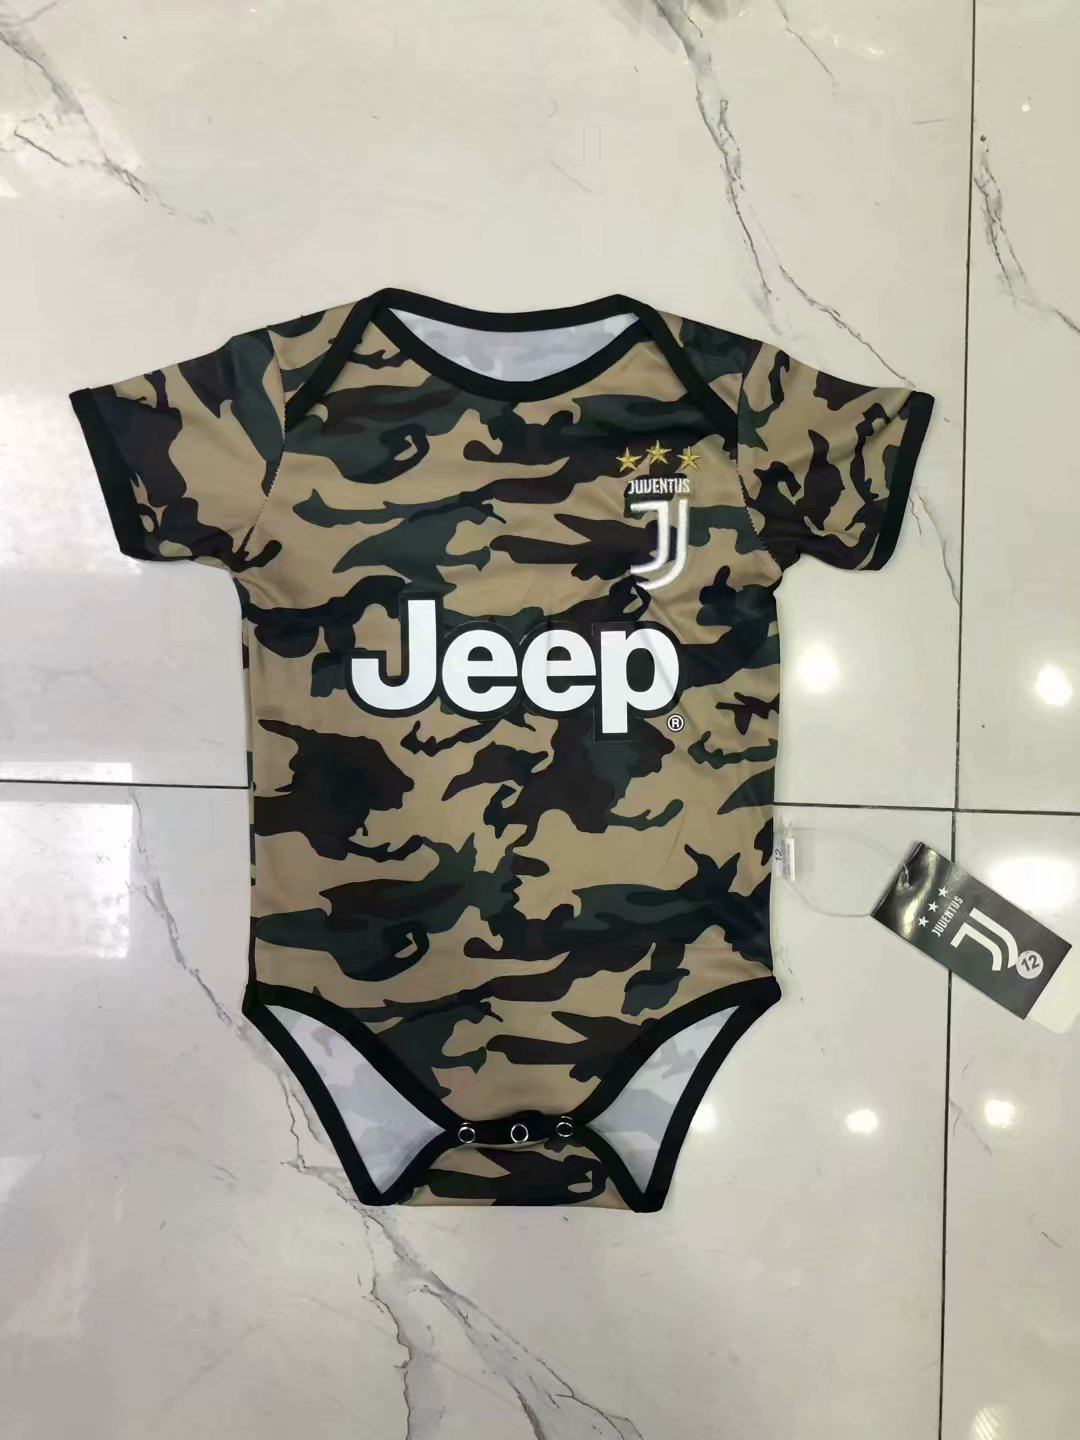 reputable site a8b7d 66118 Juventus Camouflage Jersey Infants 2019